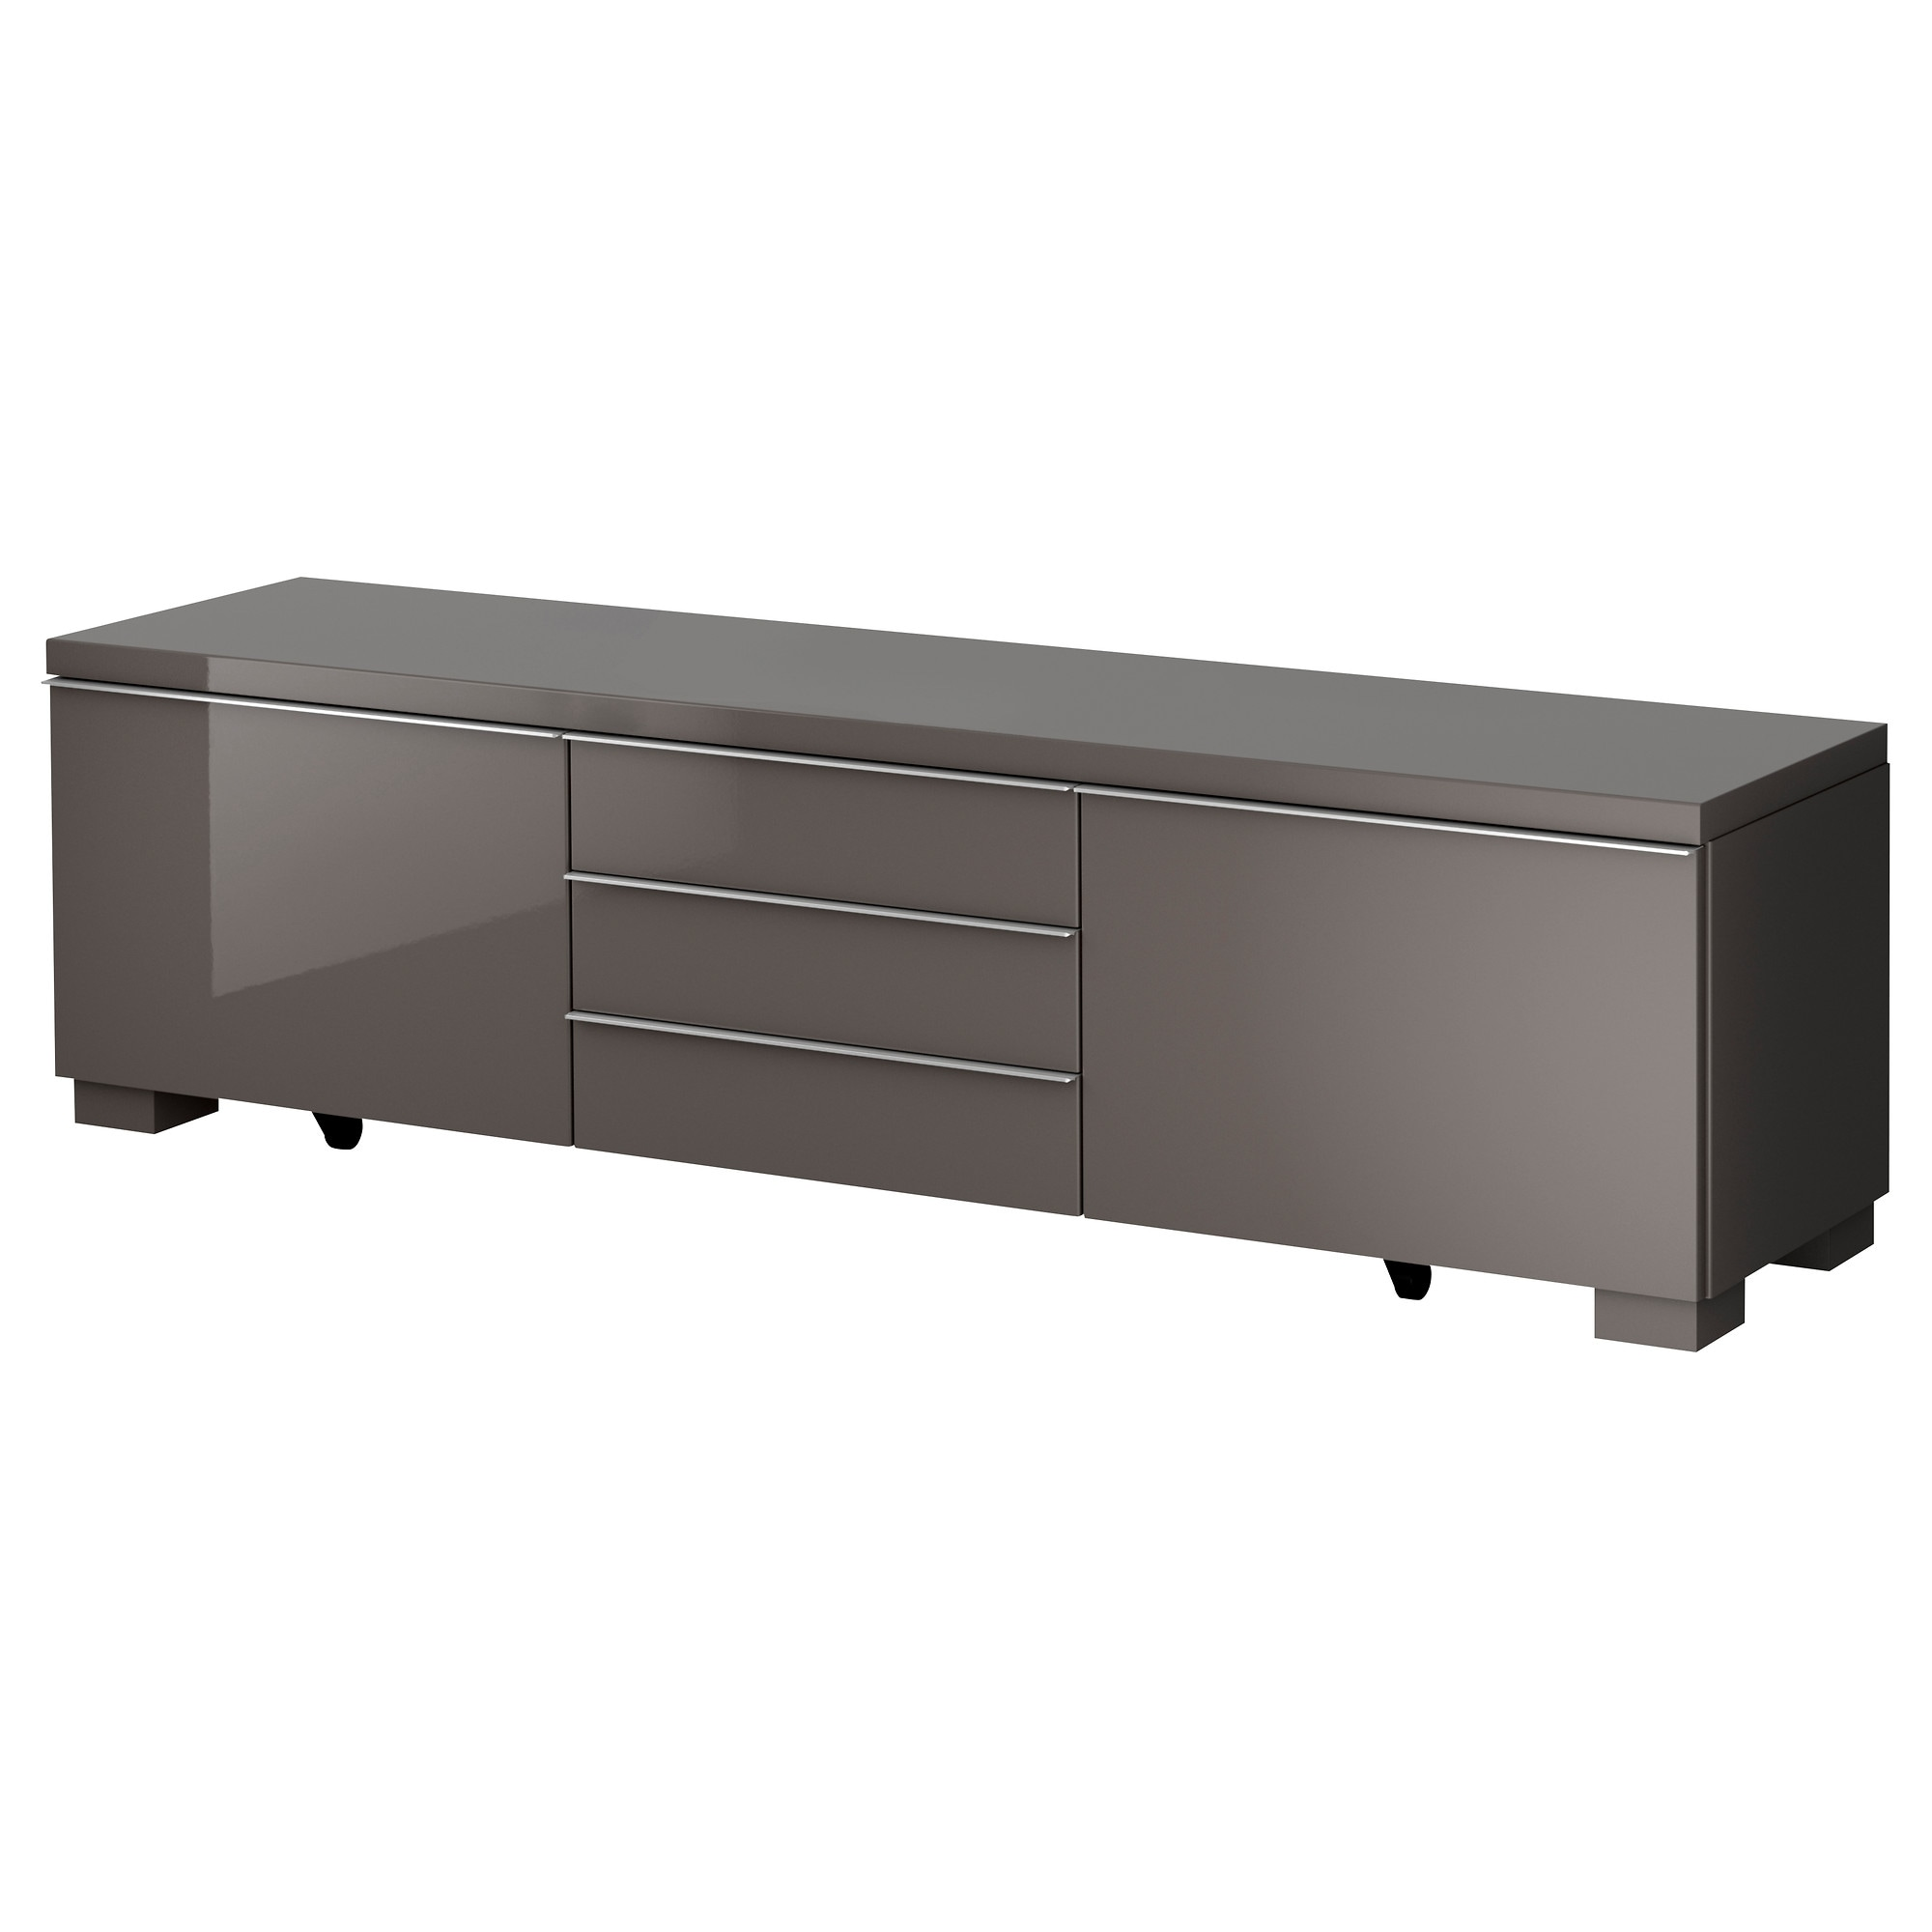 tv rack wei ikea neuesten design kollektionen f r die familien. Black Bedroom Furniture Sets. Home Design Ideas